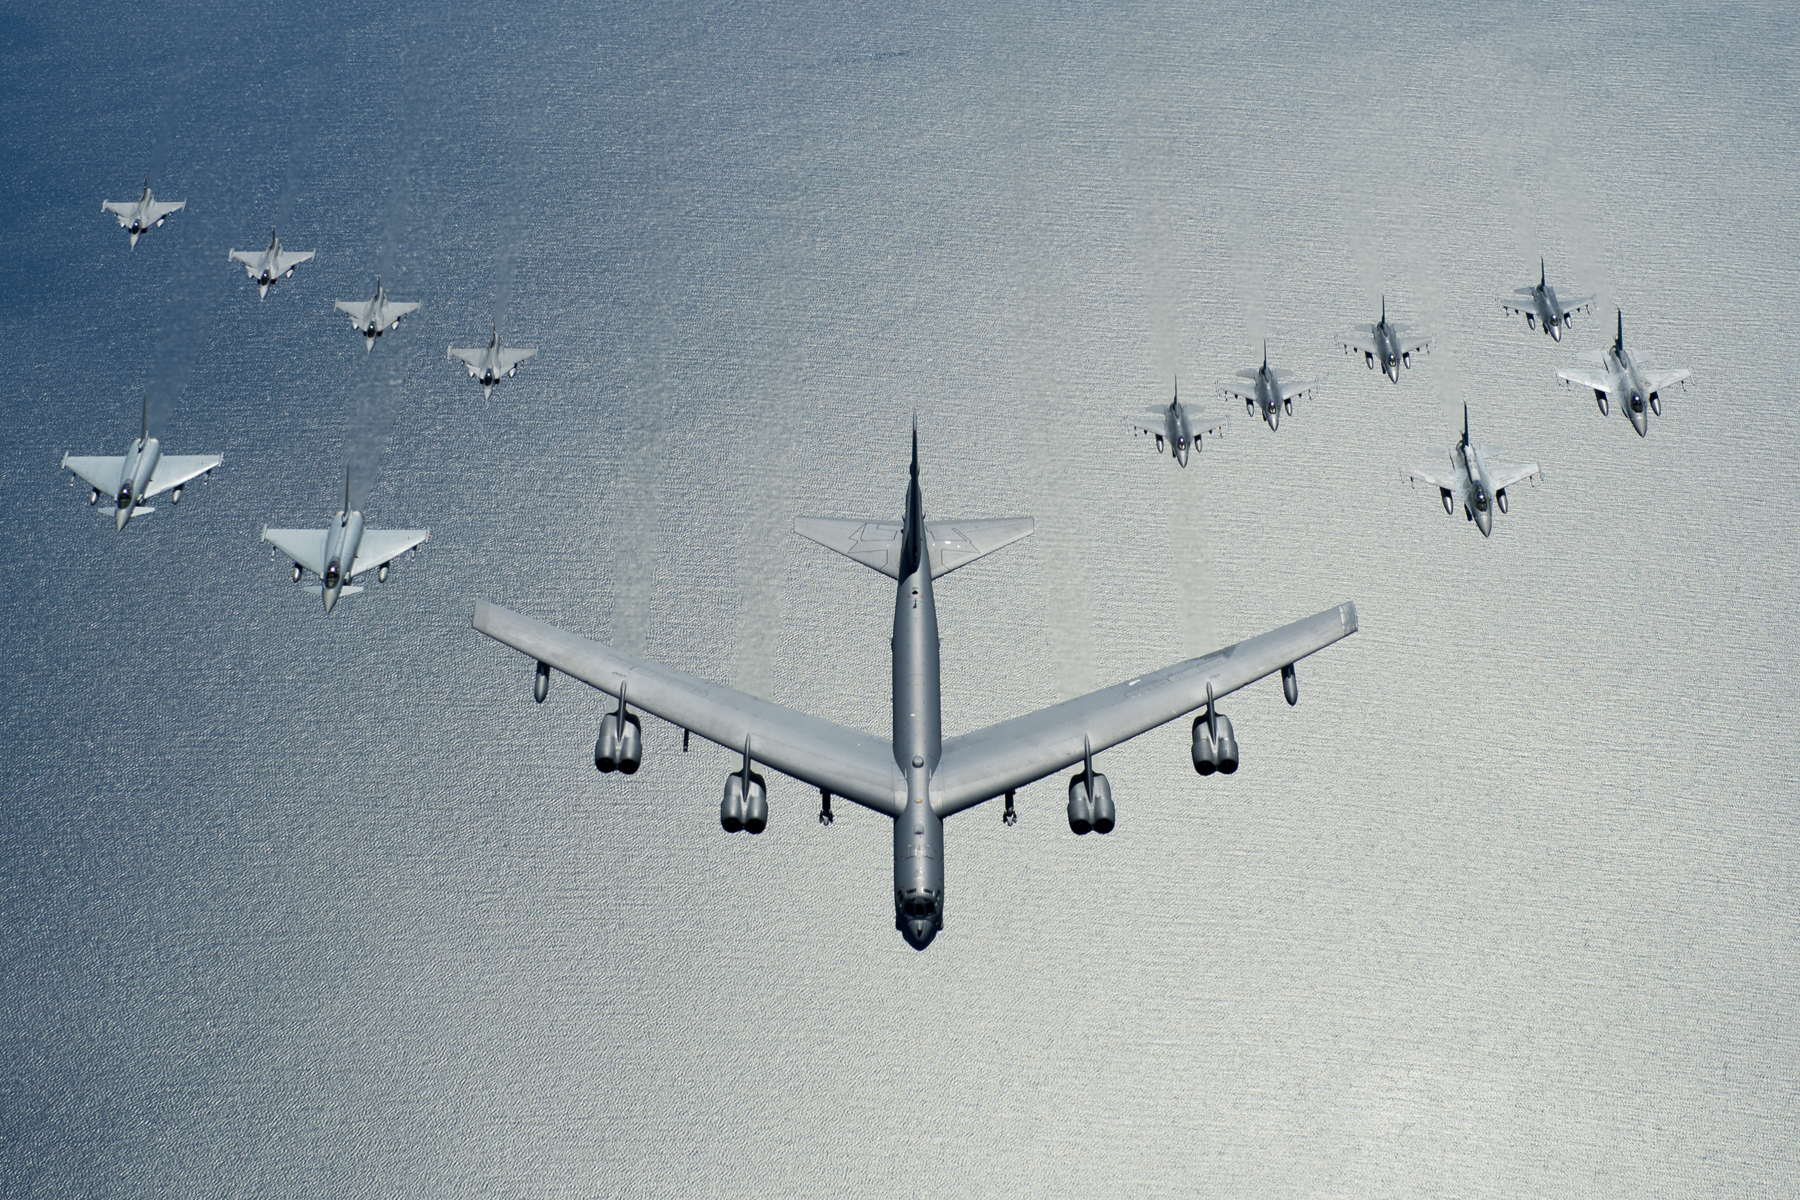 A United States Air Force B52 Stratofortress leads a formation of aircraft including two Polish air force F16 Fighting Falcons, four U.S. Air Force F16 Fighting Falcons, two German Eurofighter Typhoons and four Swedish Gripens over the Baltic Sea, June 9, 2016. US Air Force photo.